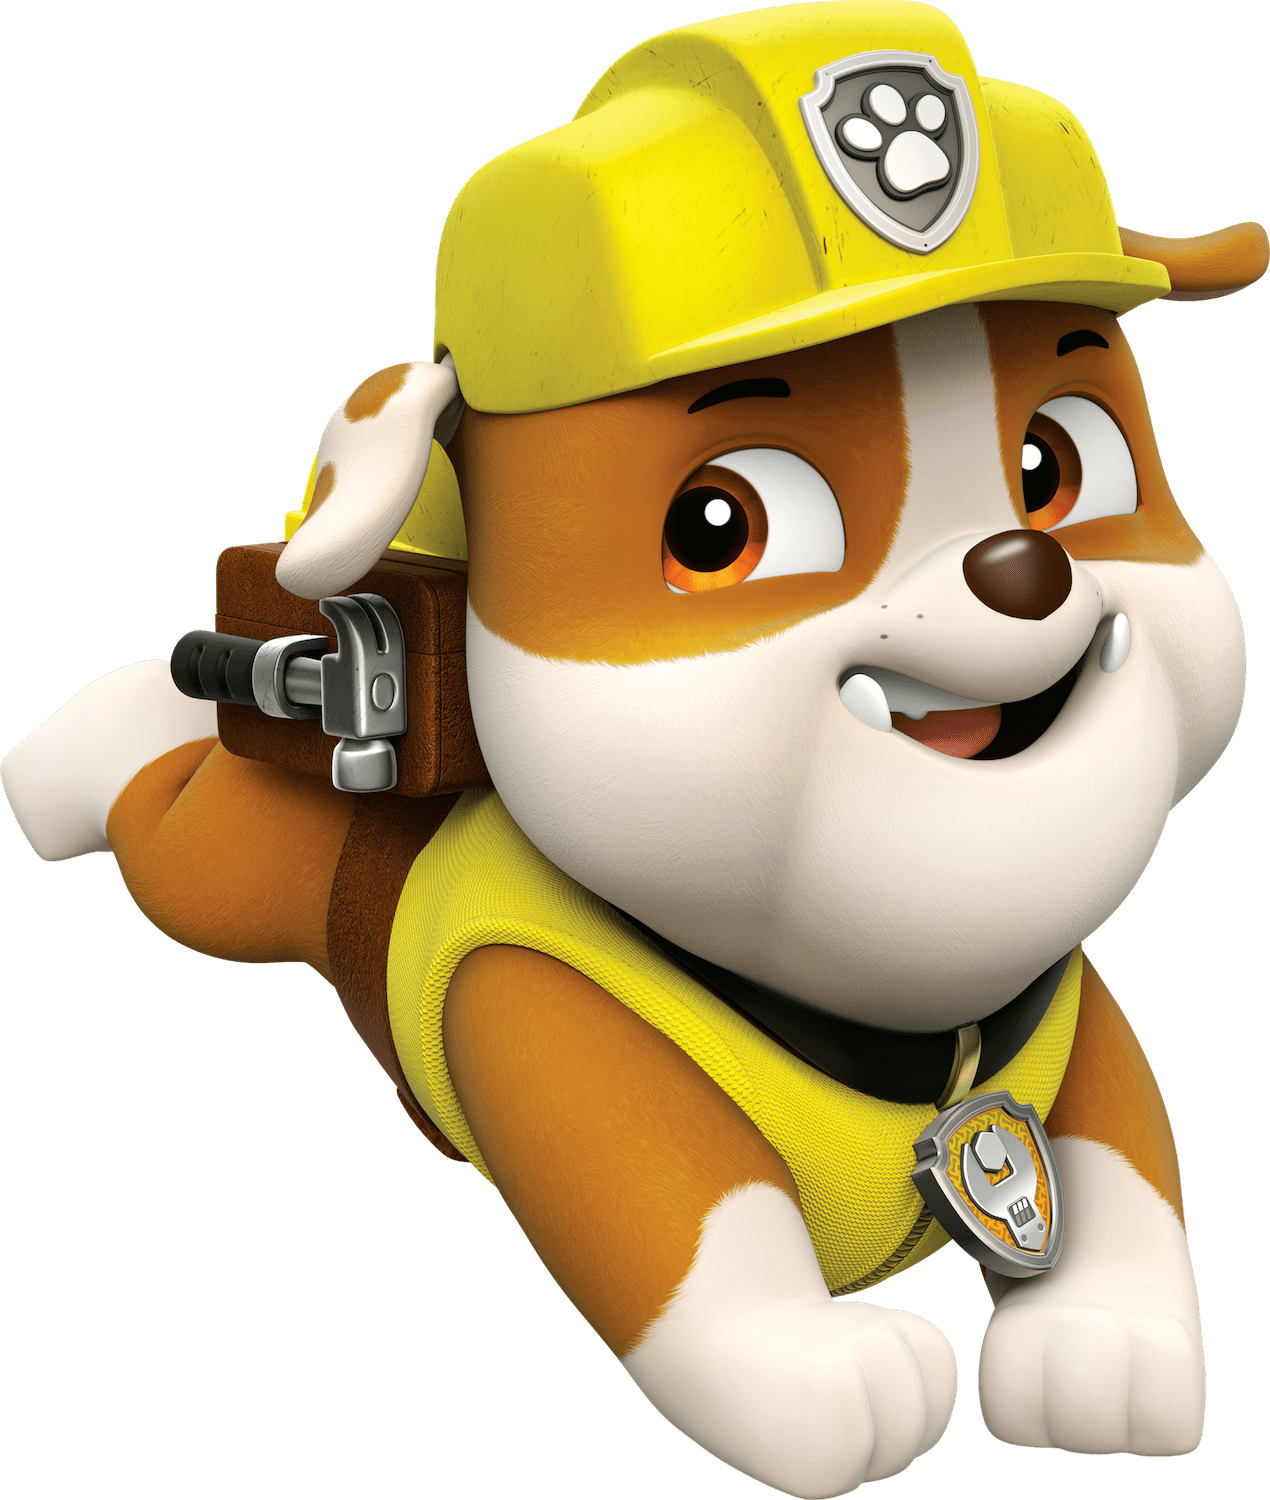 Paw patrol marshall clipart clipart download Rubble 2 Paw Patrol Clipart Png clipart download